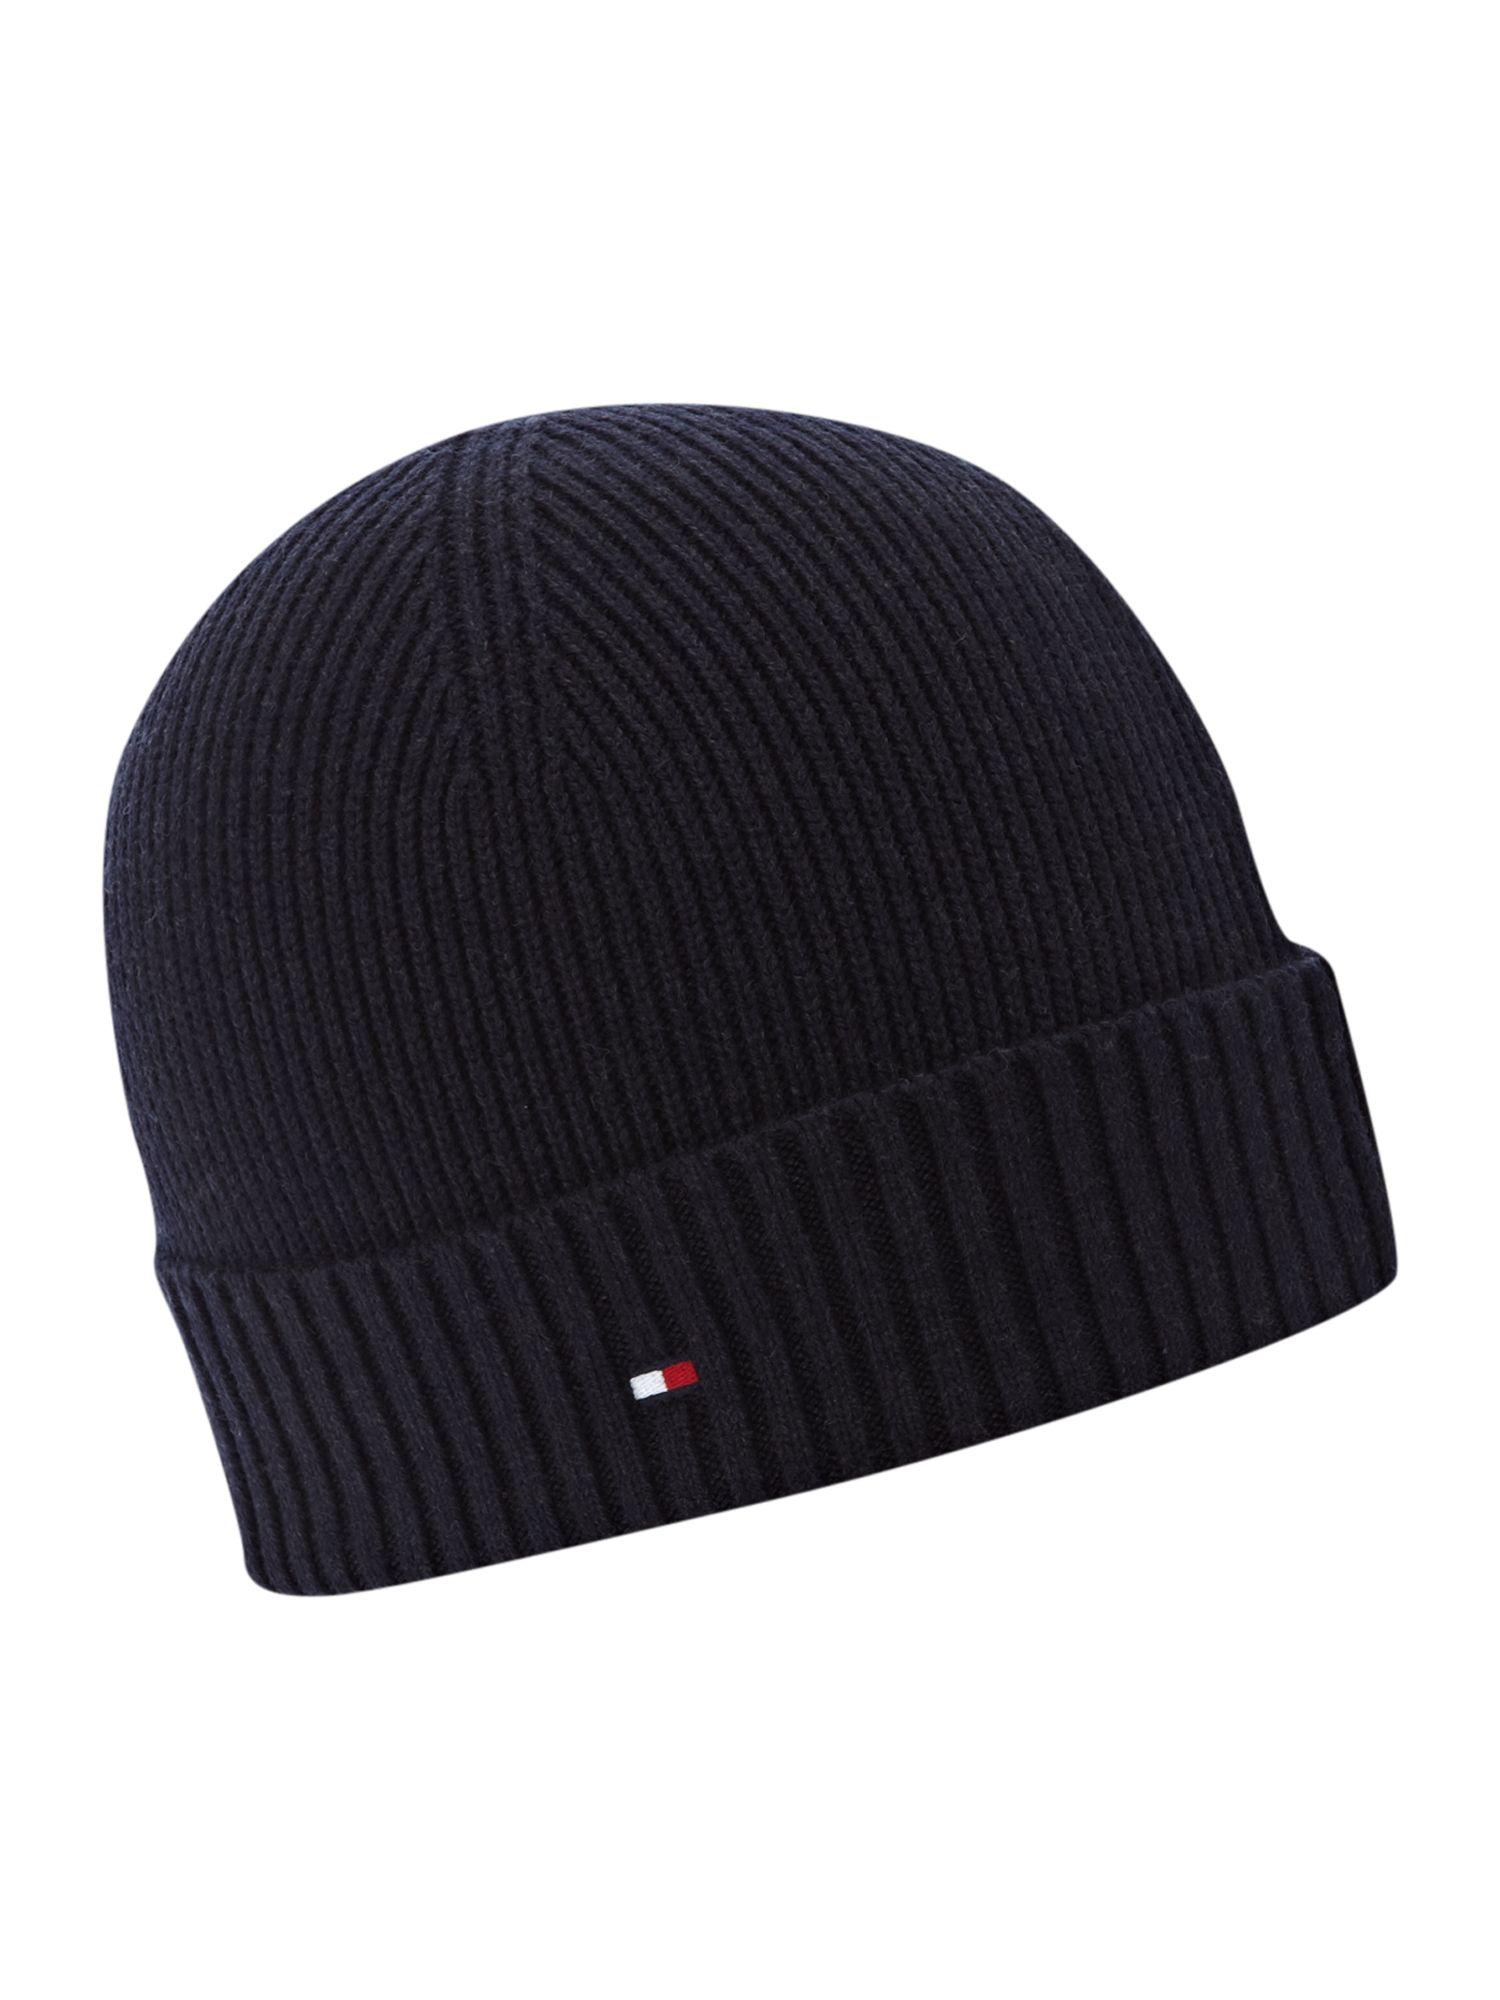 Tommy Hilfiger Beanie Hat In Blue For Men Lyst